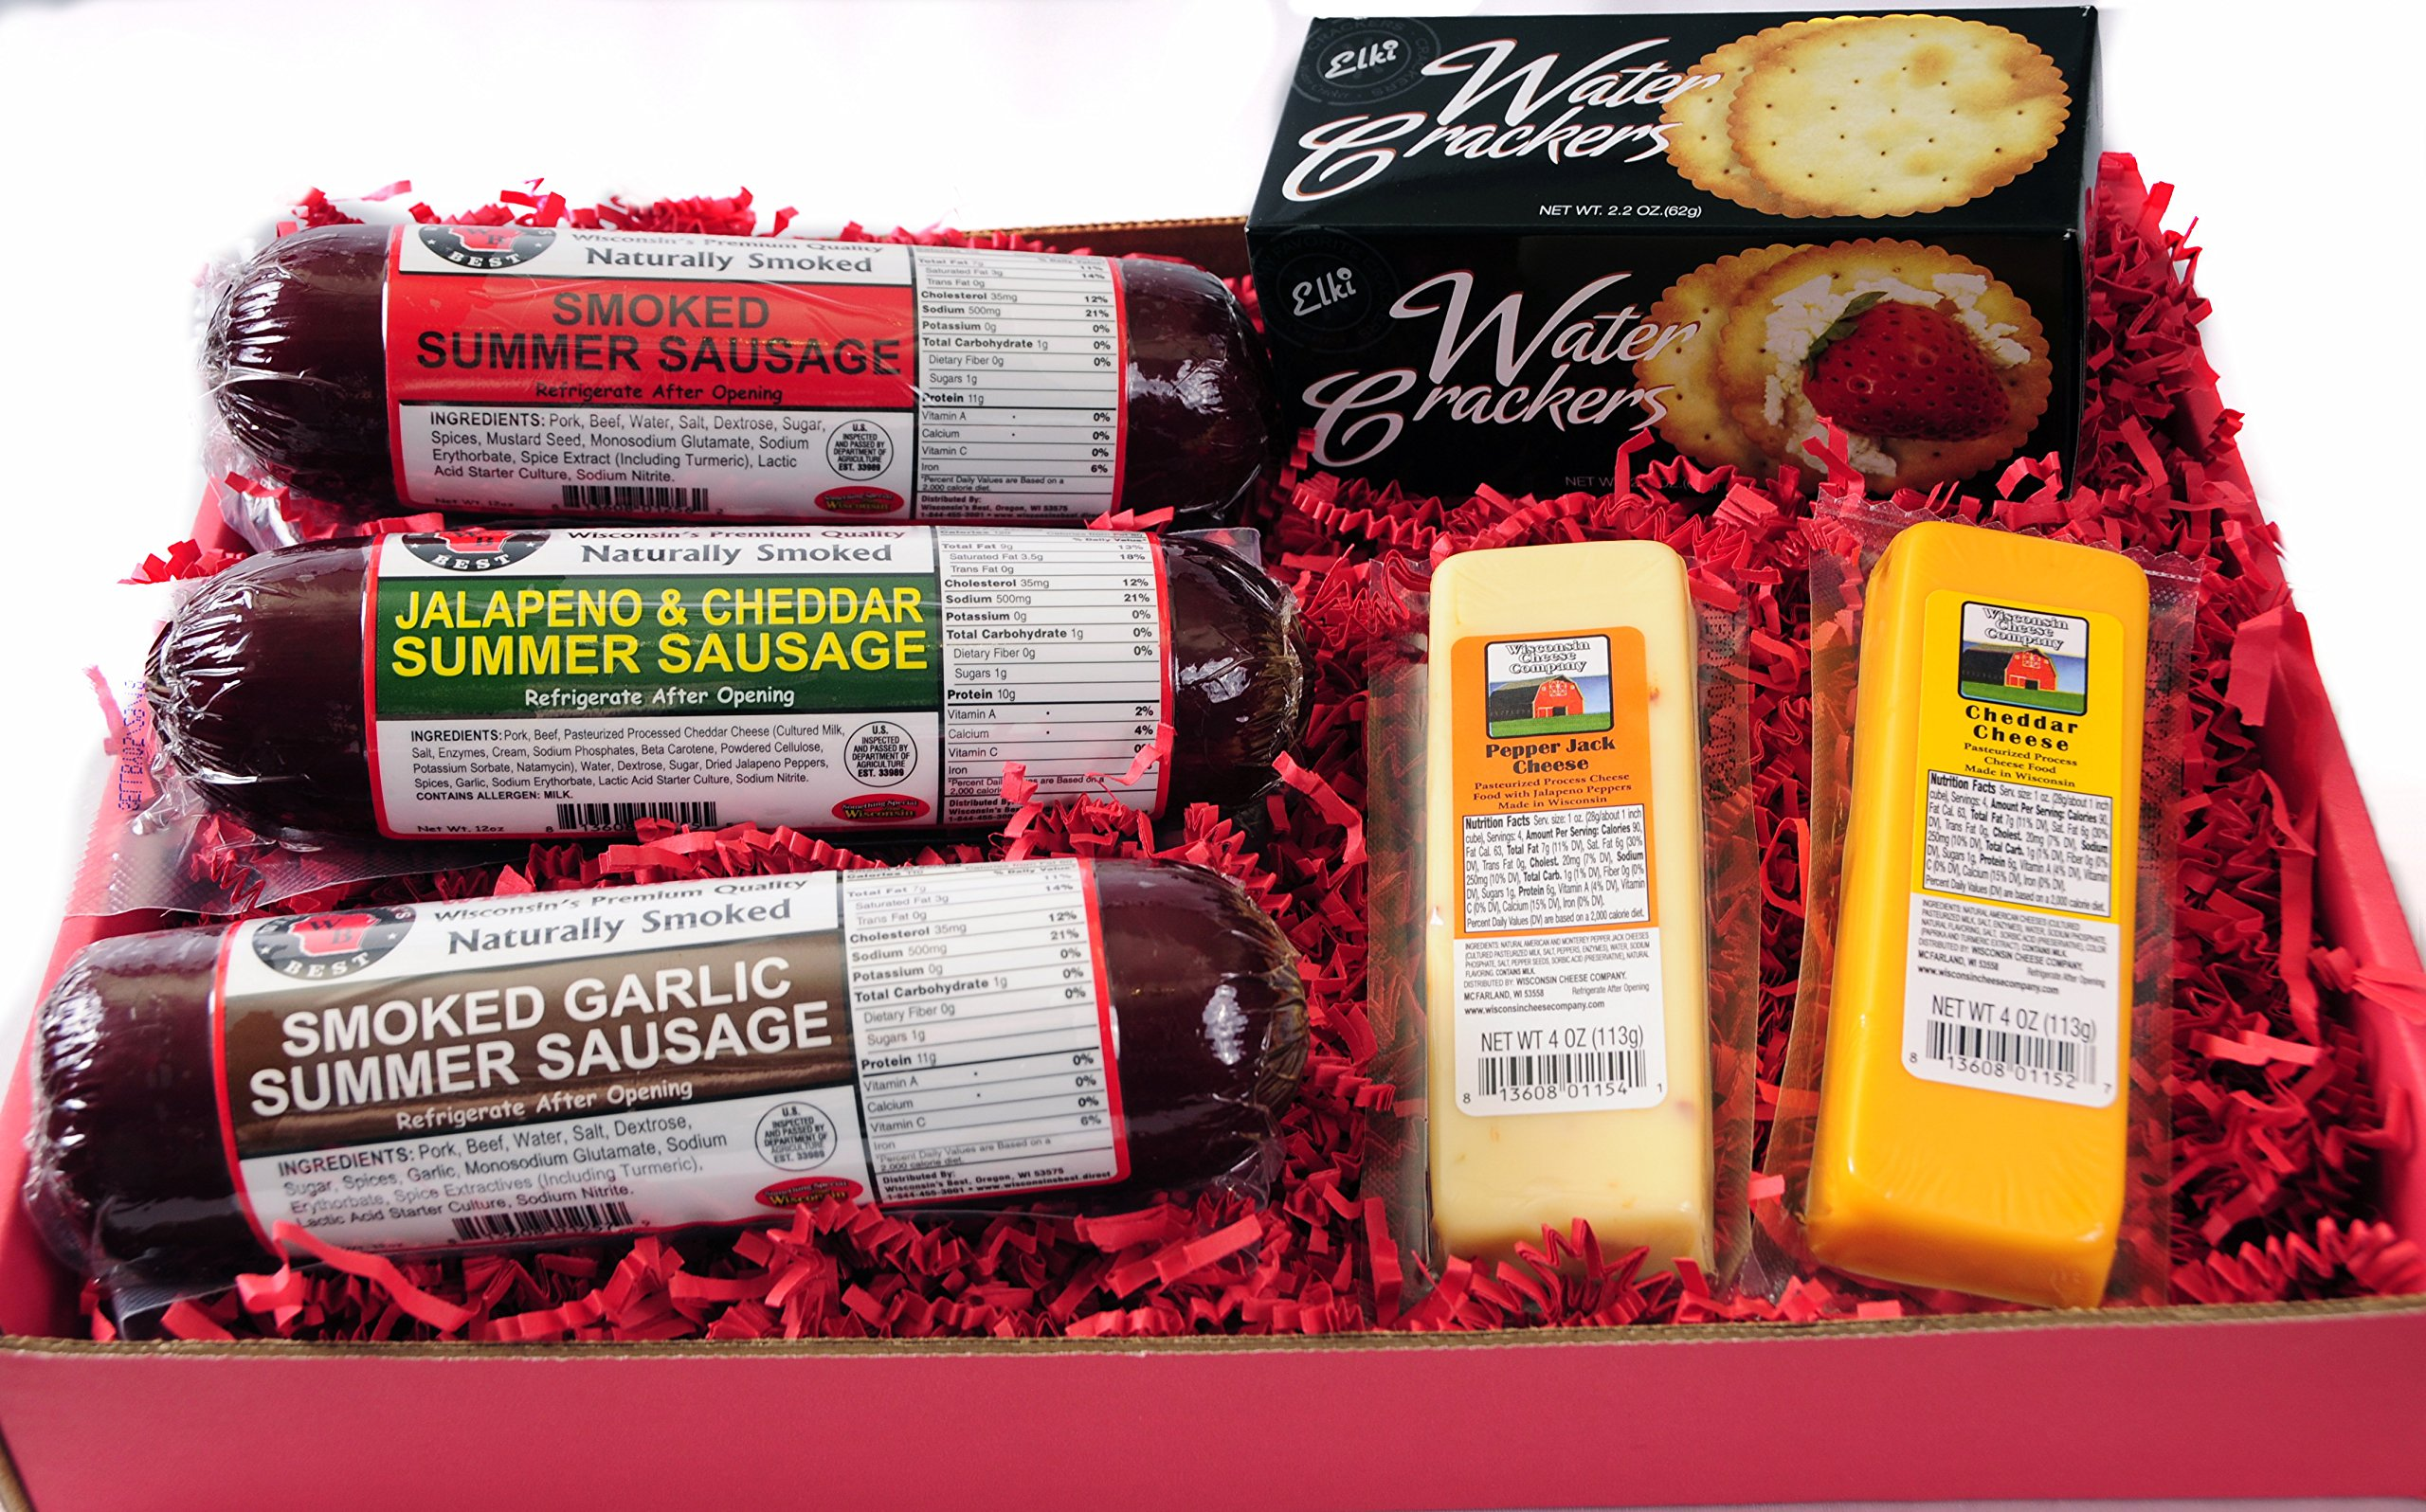 The Man's Snacker Sausage, Cheese & Cracker Gift Basket - Cheddar and Jalapeno